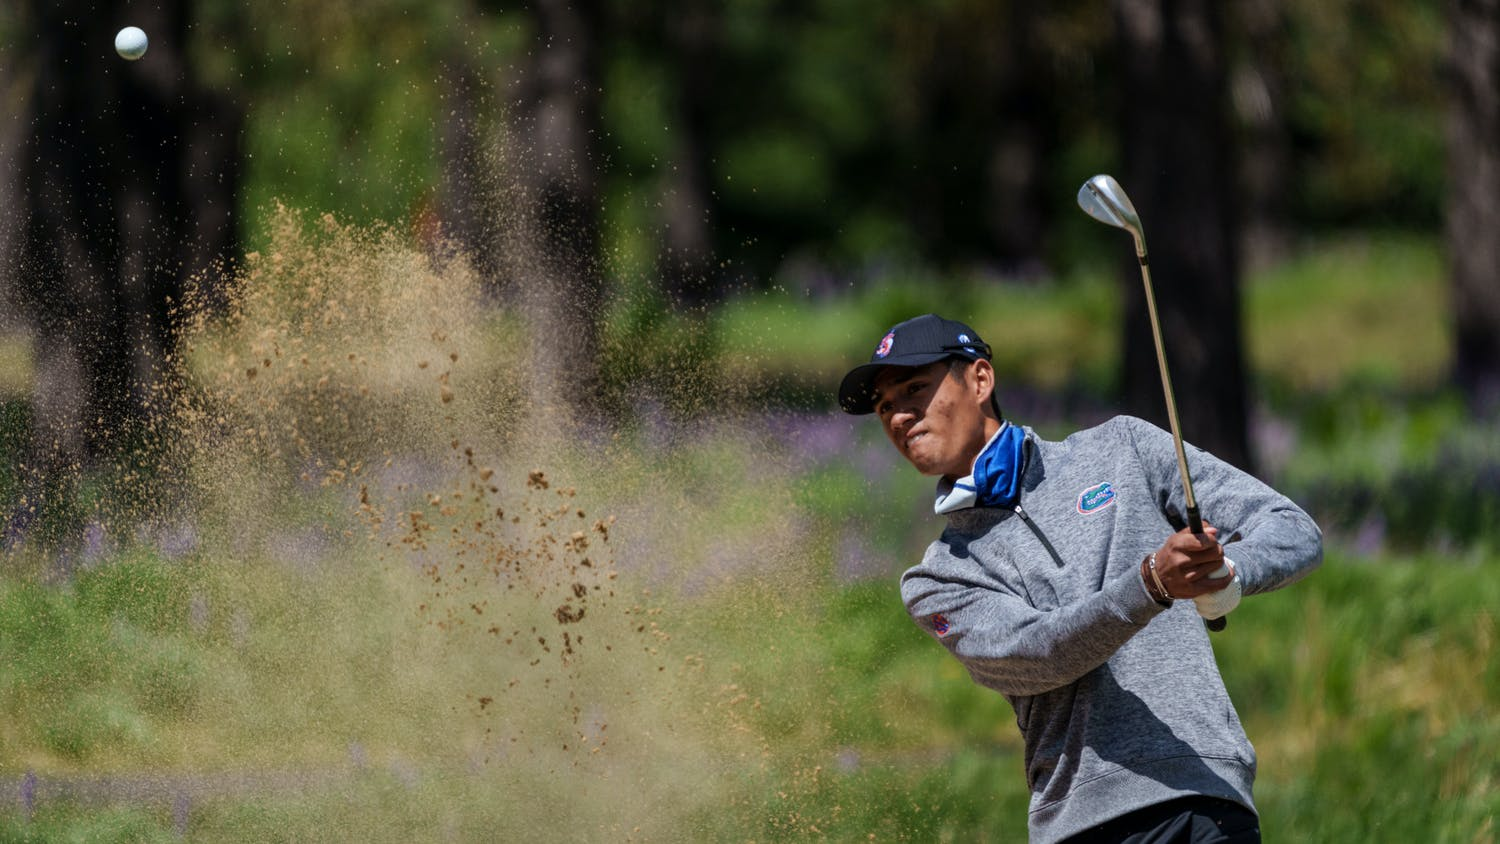 Florida's Ricky Castillo  competes in the first round of the 2021 NCAA  Cle Elum Regional at Tumble Creek Golf Club in Cle Elum, Wash., on May 19, 2021. (Photography by Stephen Brashear/Red Box Pictures)